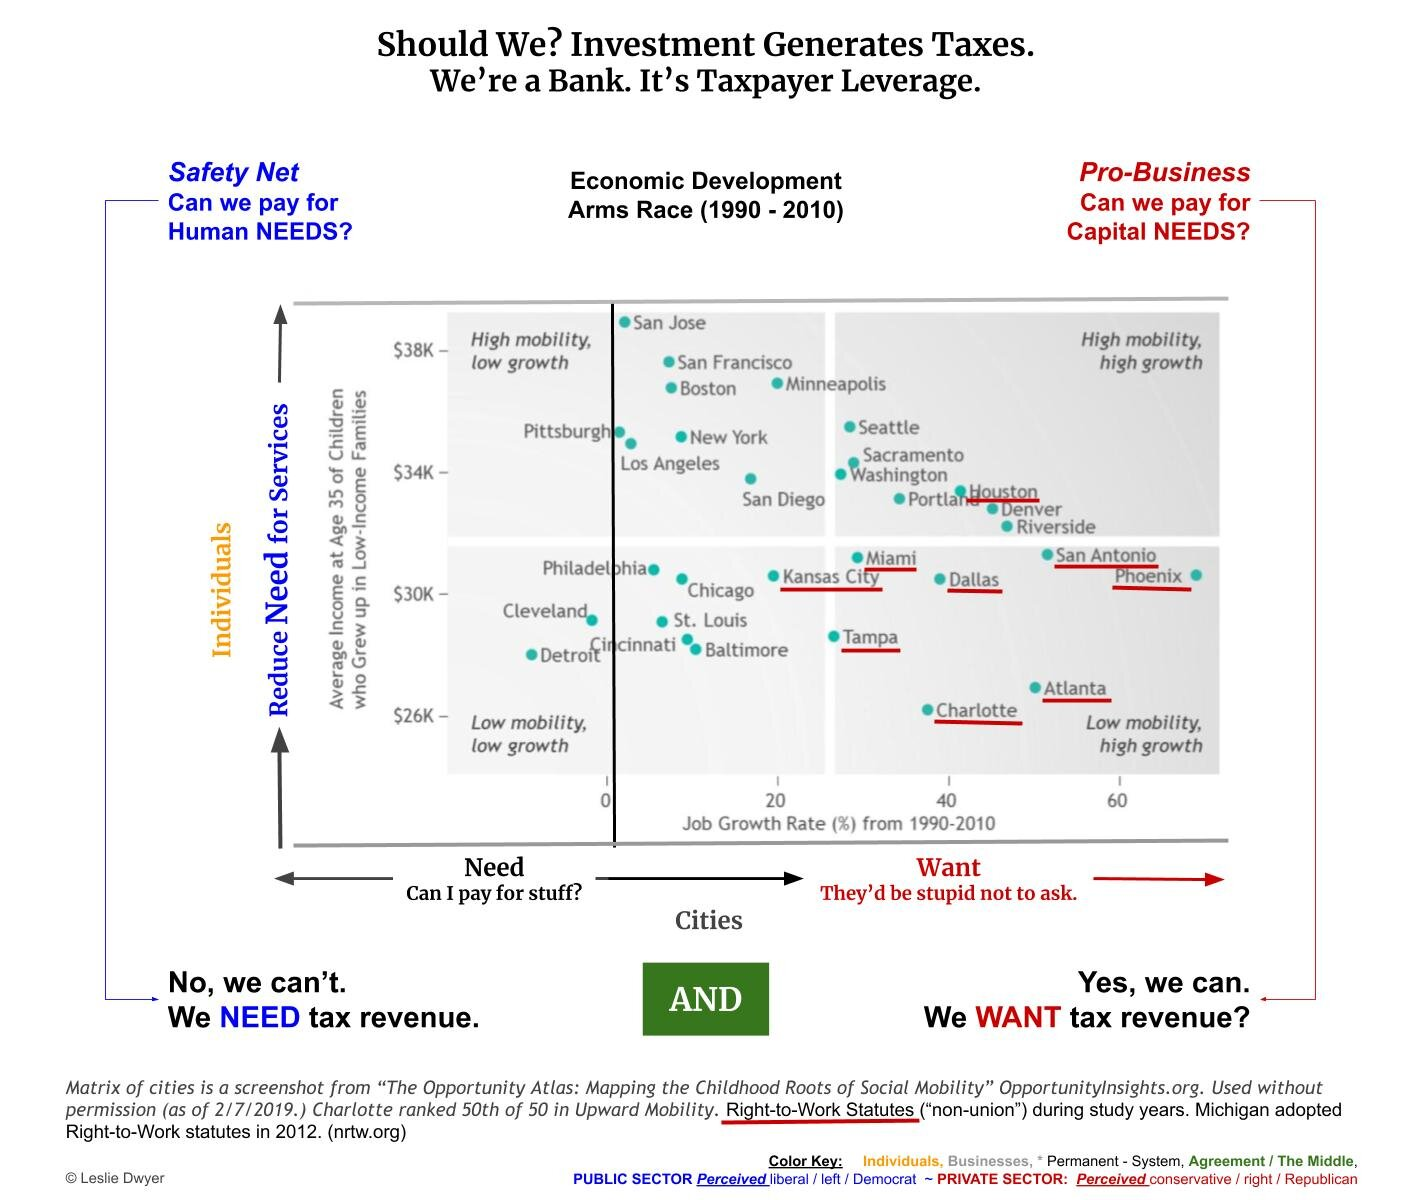 3 Tax Incentives Want Over Need.jpg